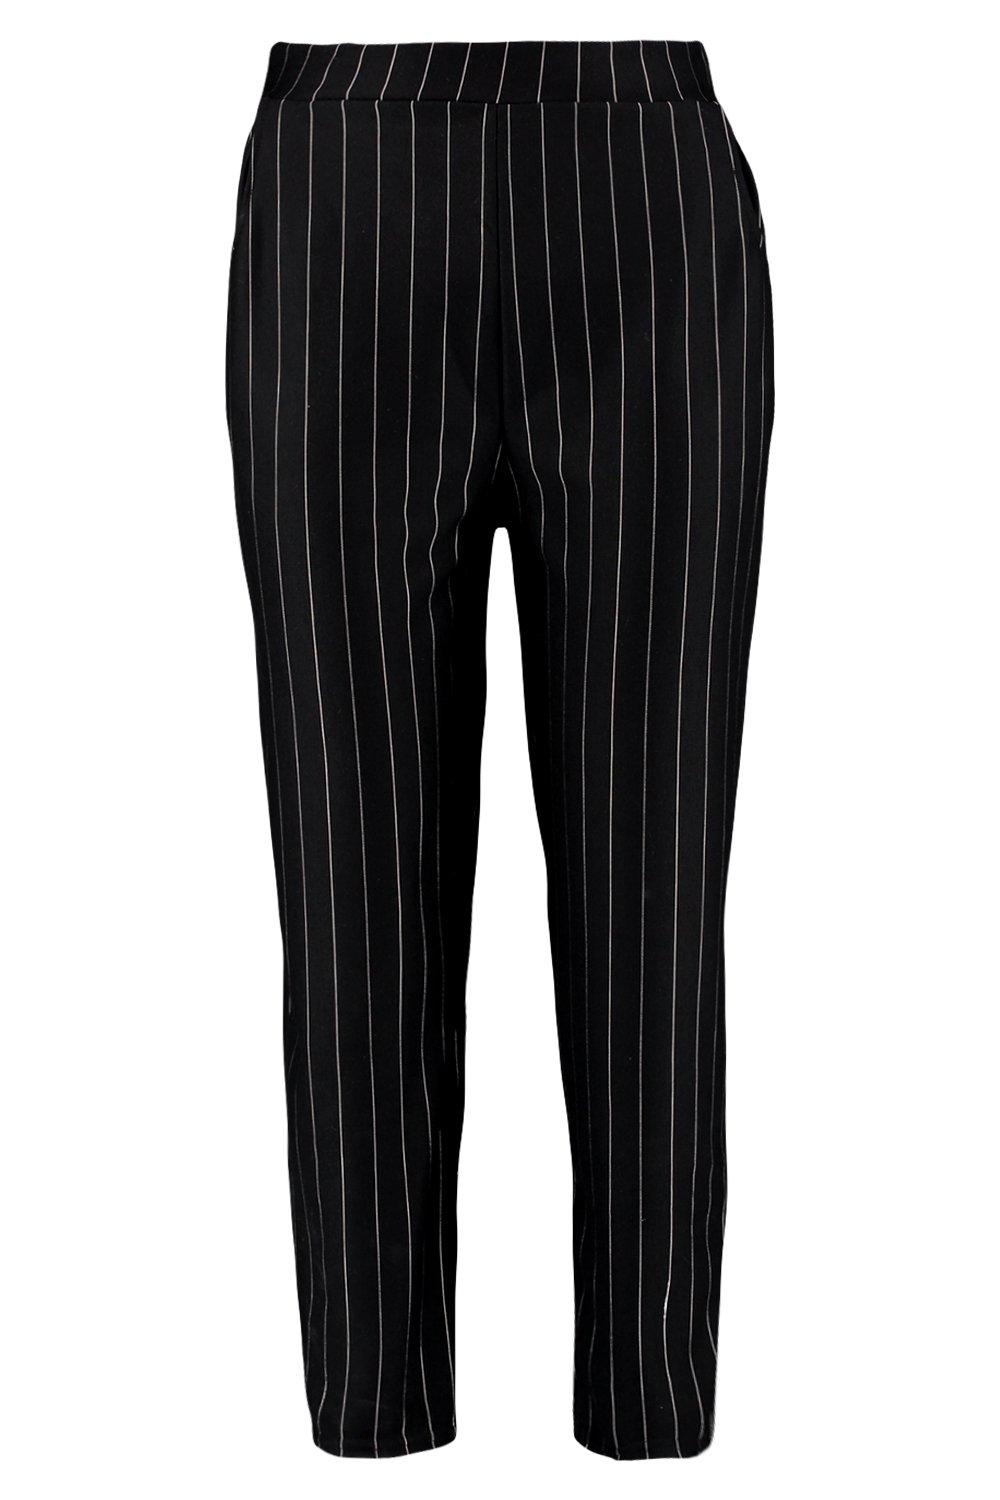 Pinstripe black Pinstripe Pinstripe Trouser Trouser Relaxed Relaxed black StZw5PWT